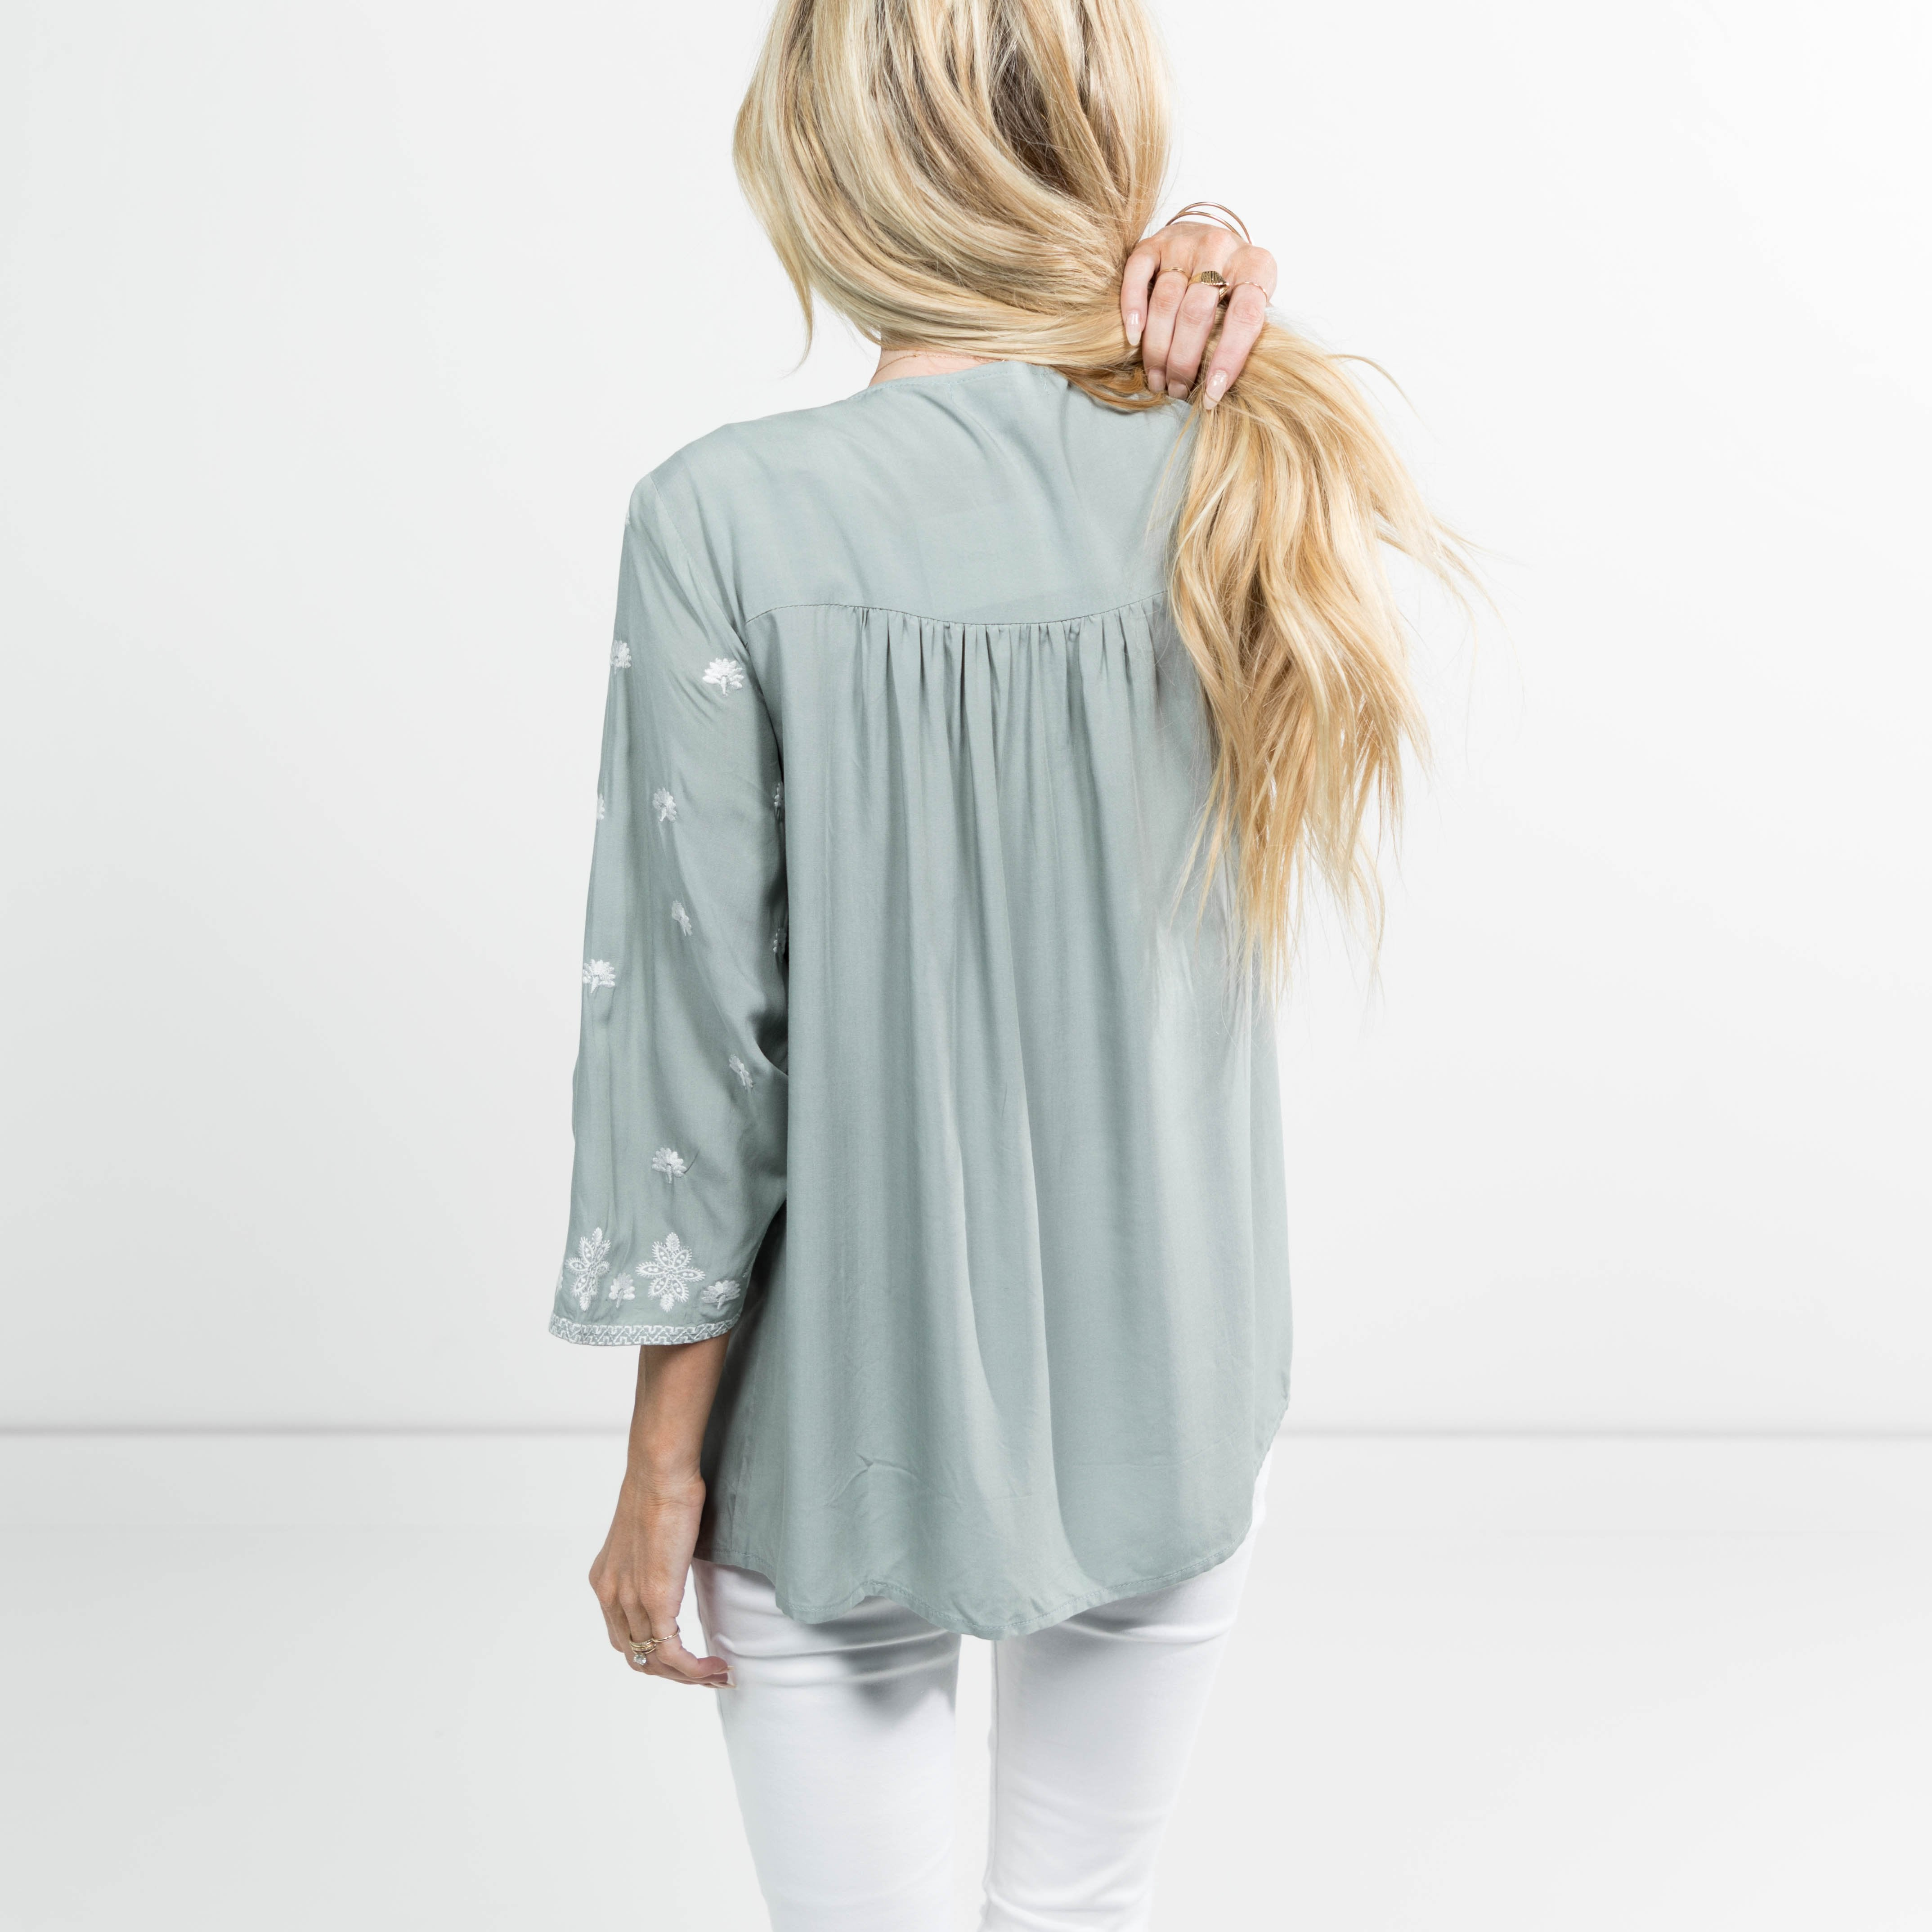 Kimberly Embroidered Top in Sage